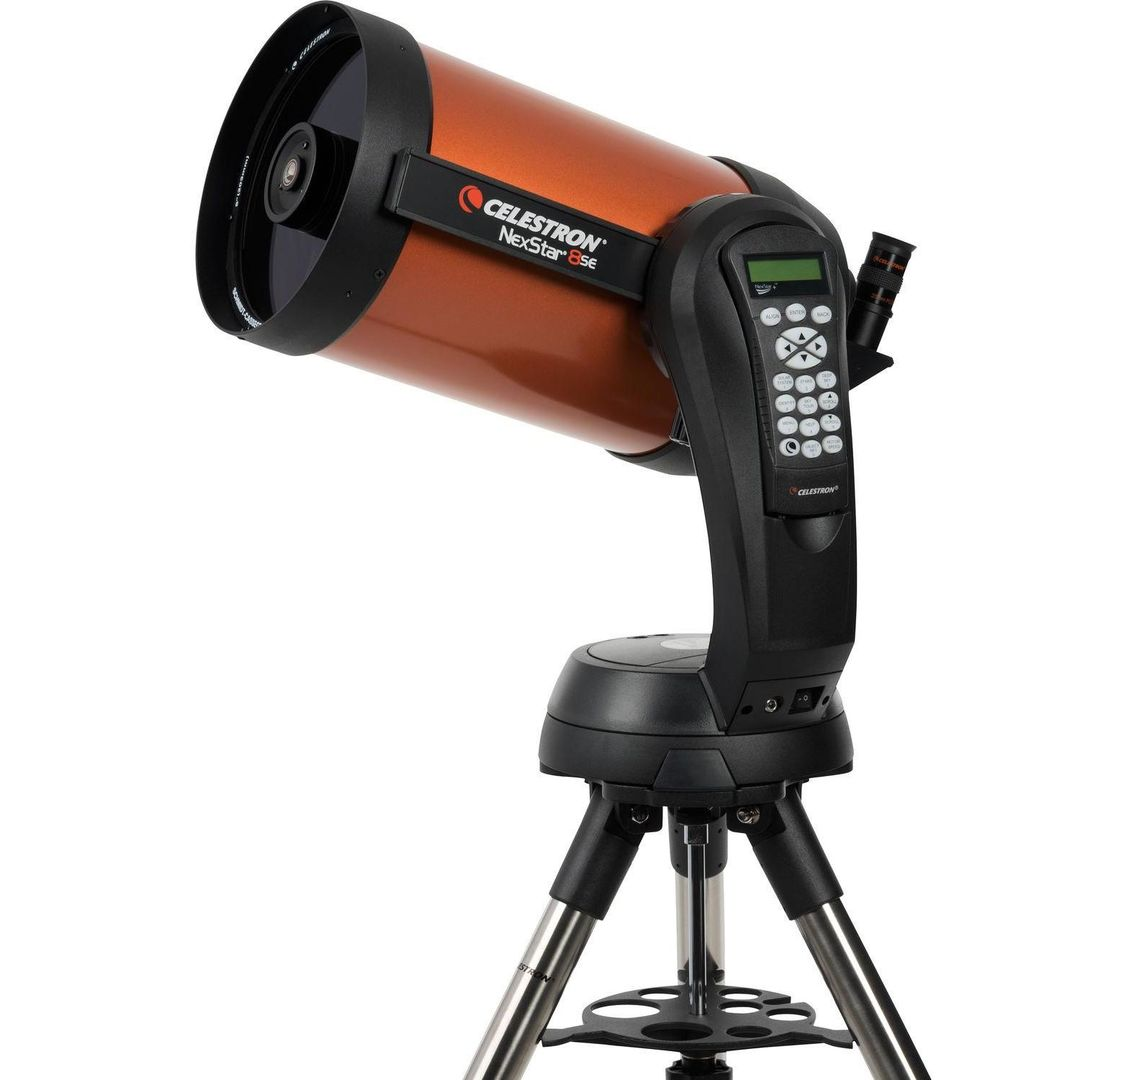 Buy Celestron Nexstar 8 Se Computerized Telescope in Dubai at cheap price